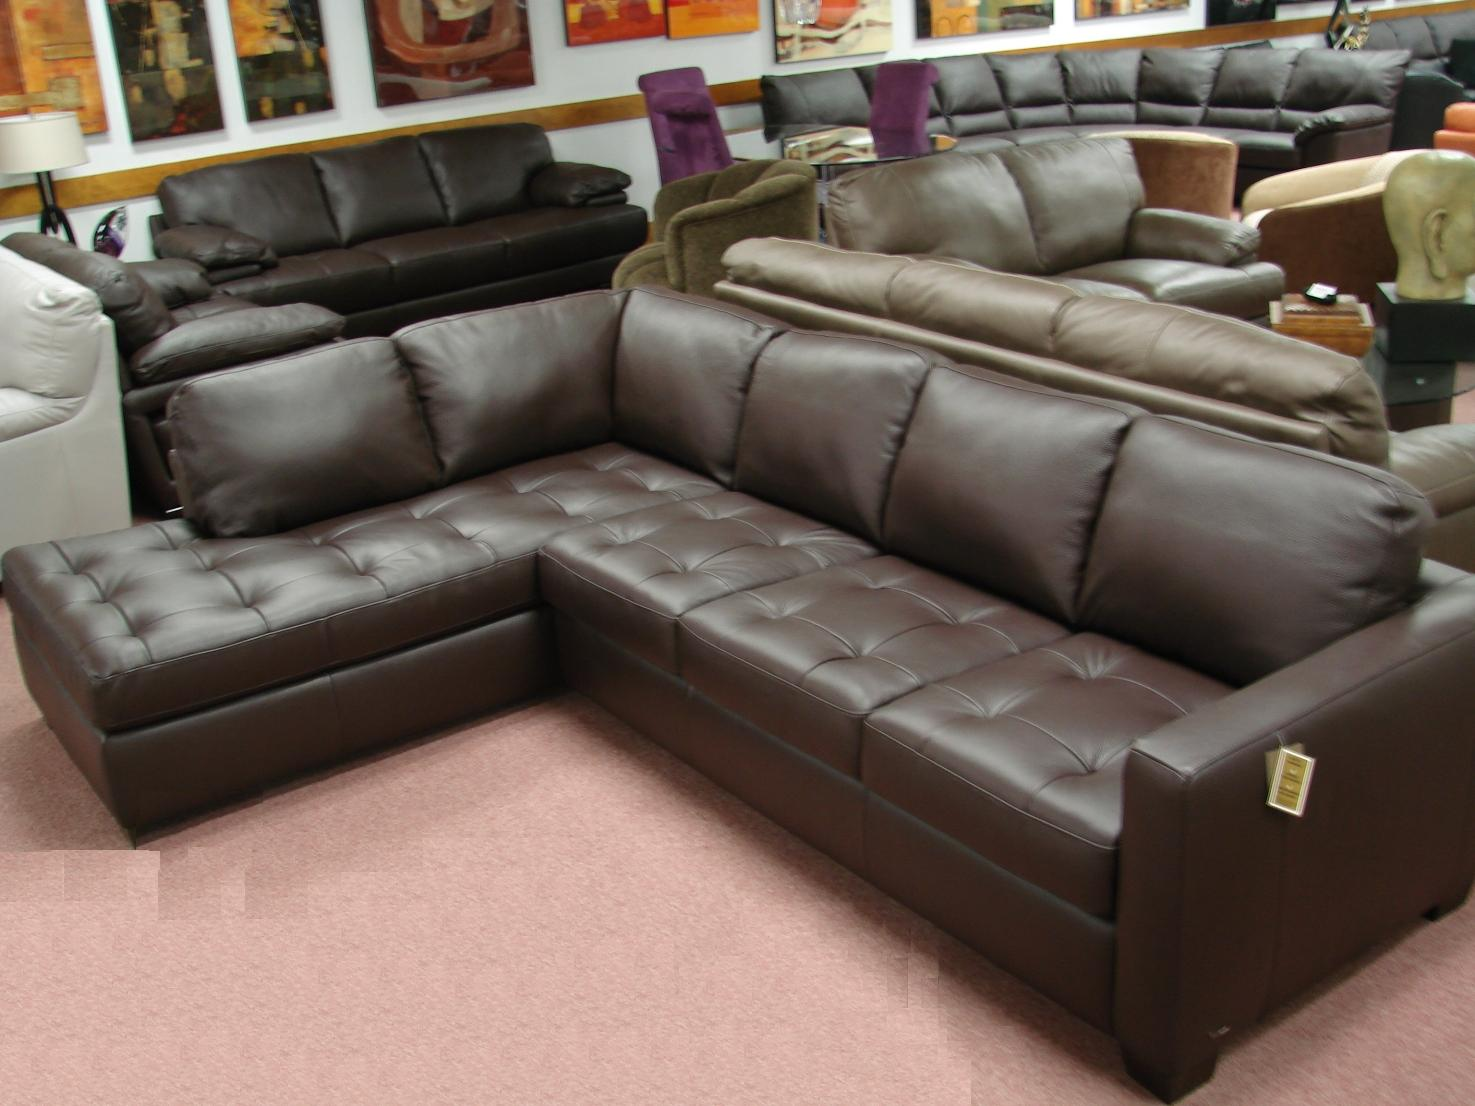 Natuzzi Sofa For Sale Dubai Natuzzi Leather Sofas And Sectionals By Interior Concepts